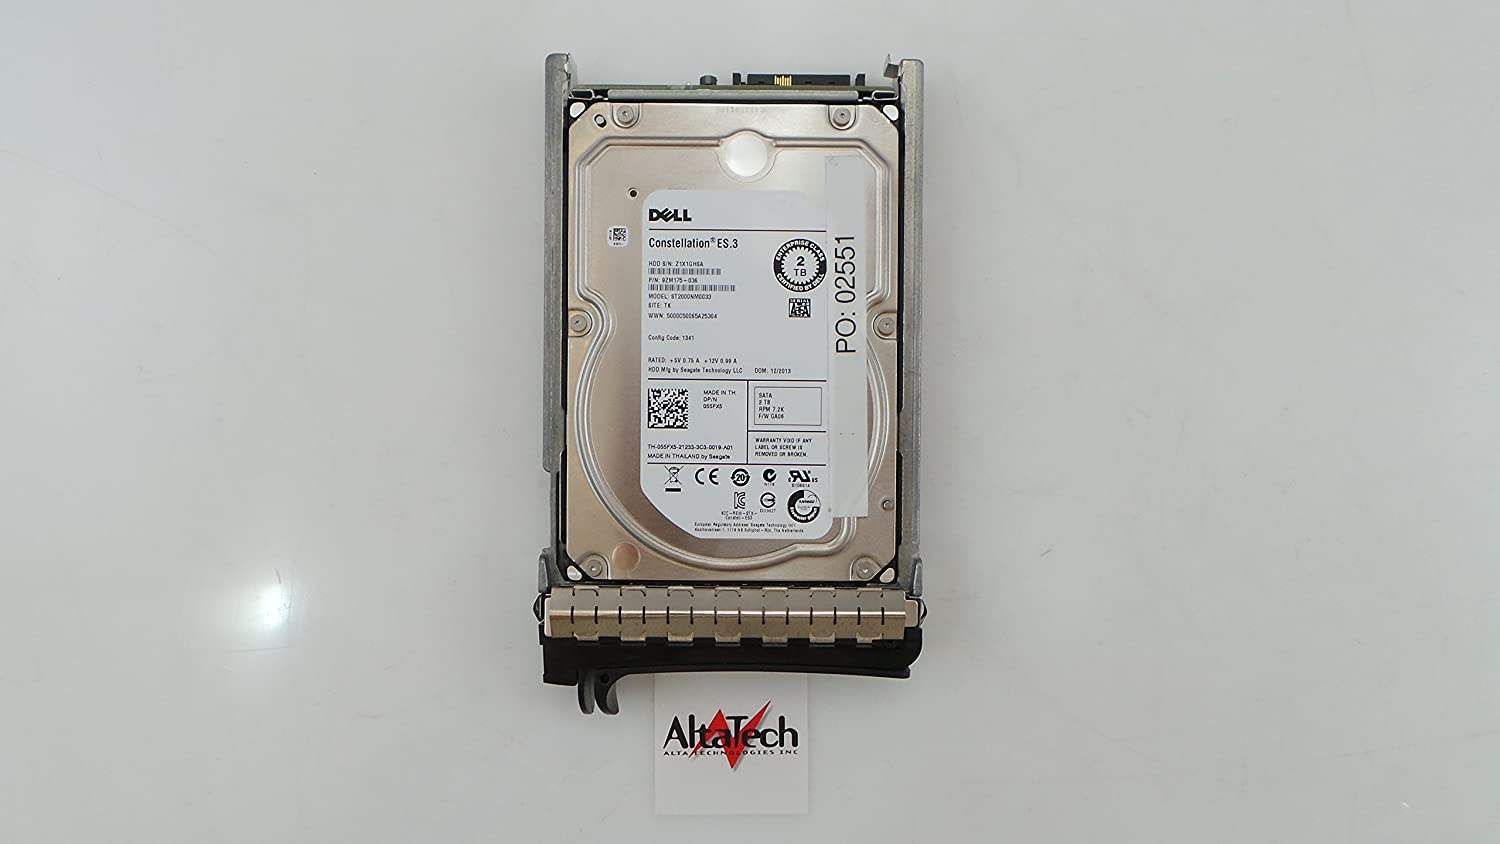 DELL 55FX5 2TB 7.2K SATA 3.5 6GB/S HDD